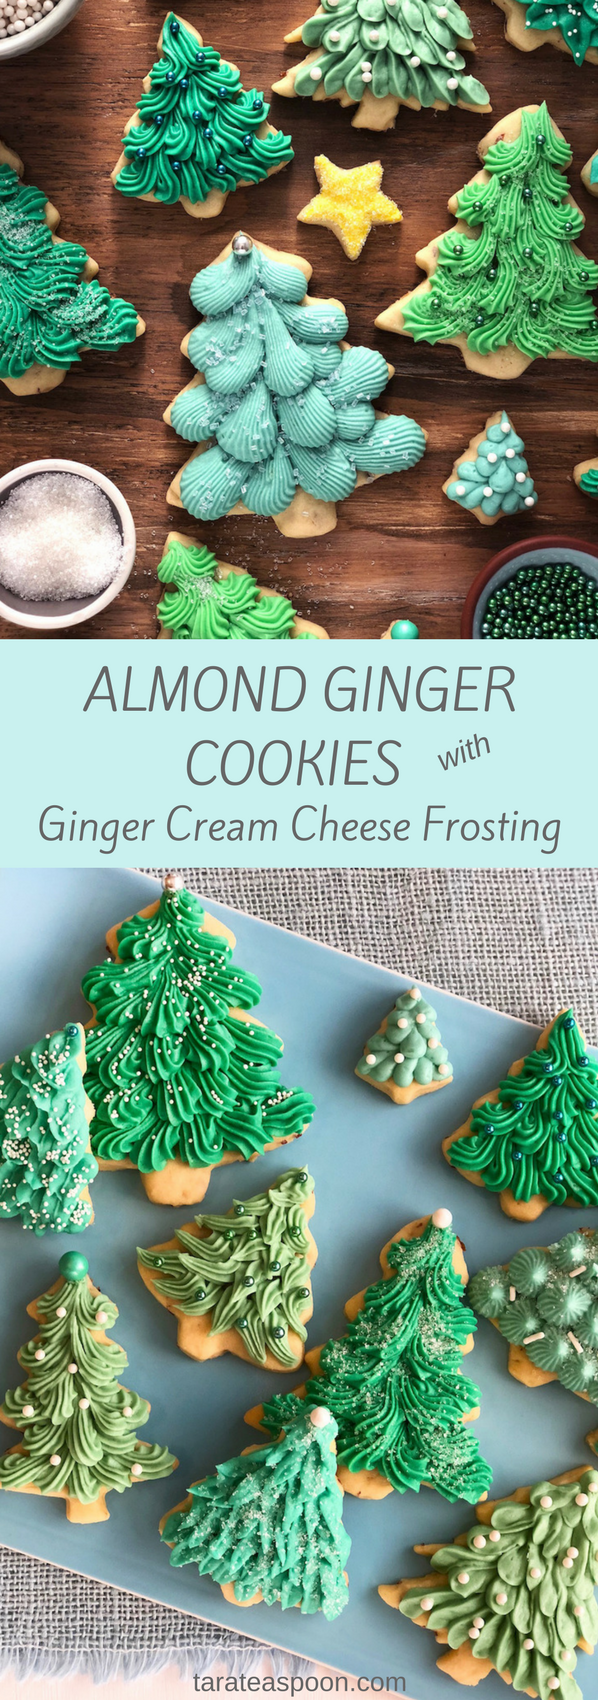 Almond Ginger Cookies pin